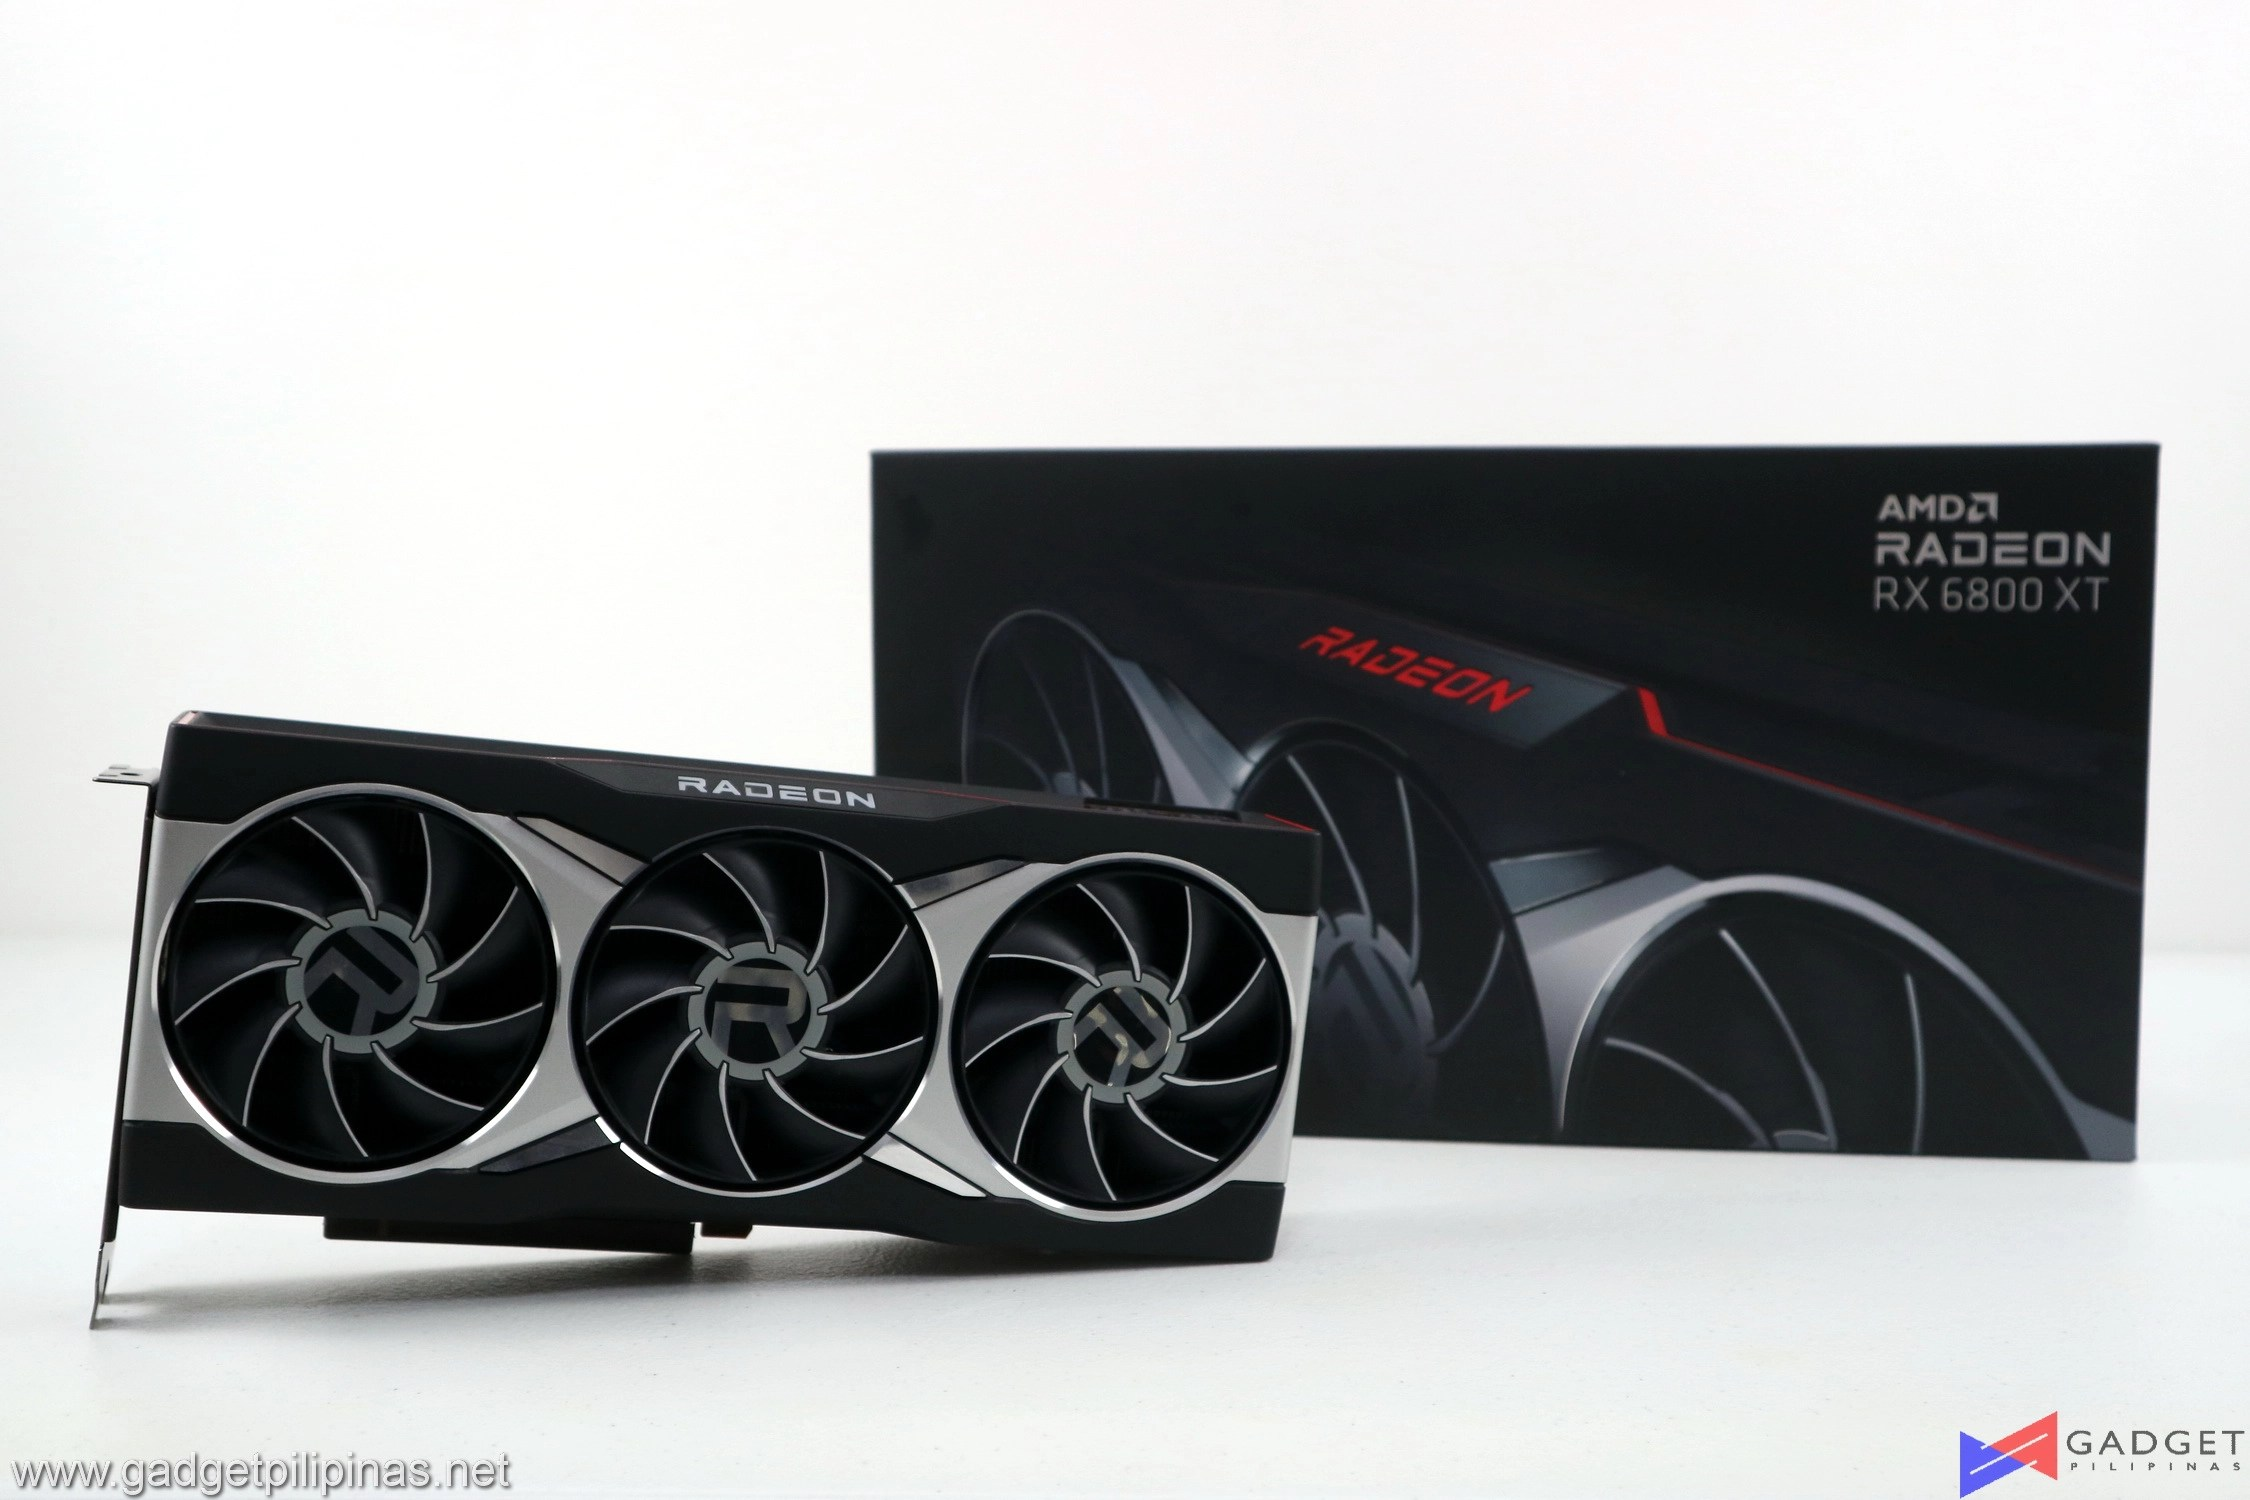 AMD Radeon RX 6800 XT Review - RX 6800XT Review Philippines - 6800 XT PH